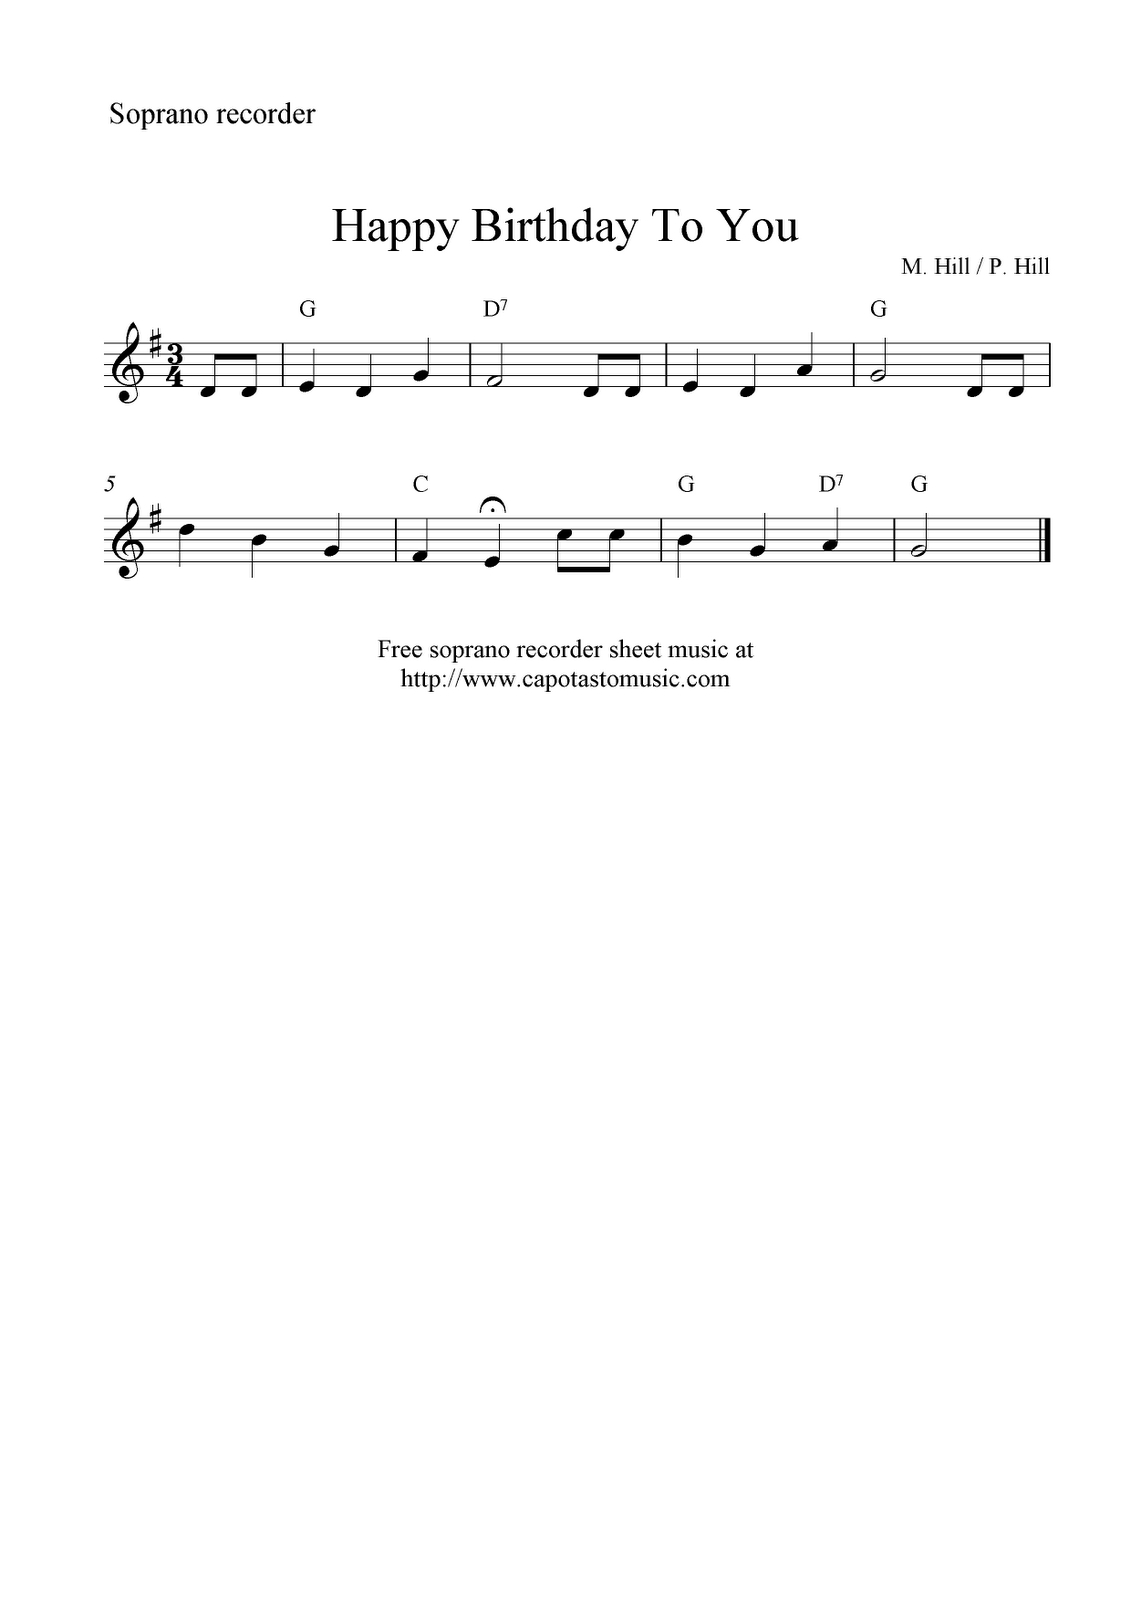 Free Sheet Music Scores: Happy Birthday To You, Free Soprano - Free Printable Recorder Sheet Music For Beginners